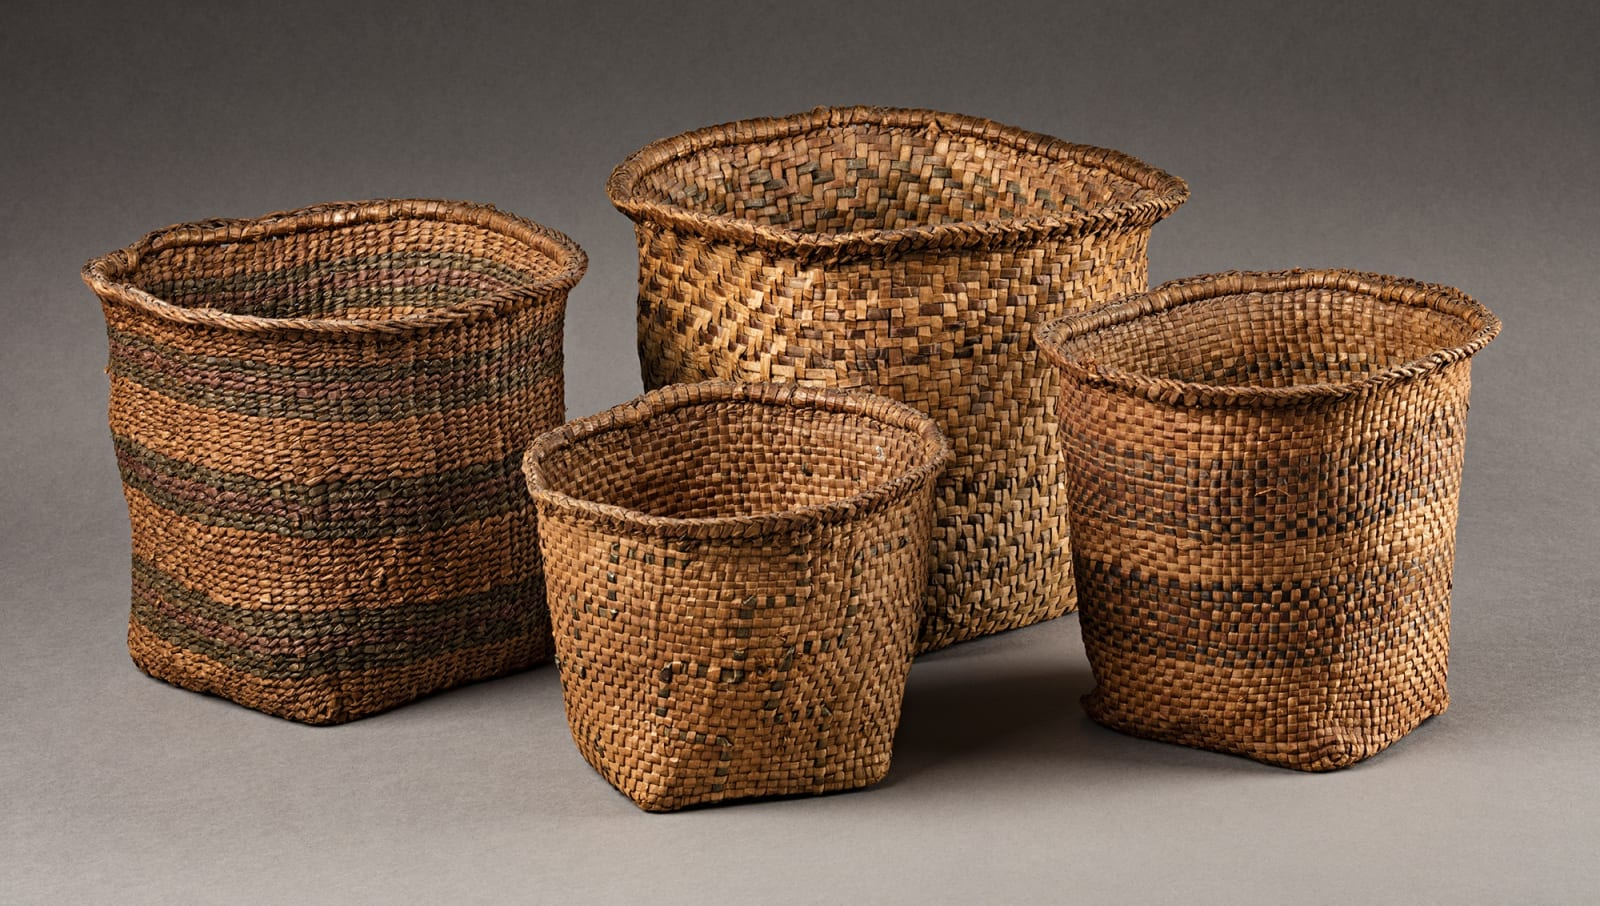 Lot 77 UNIDENTIFIED MAKER, COAST TSIMSHIAN Nesting Baskets, mid-late 19th century red cedar bark and dye, largest: 7 x 8.75 x 8.5 in (17.8 x 22.2 x 21.6 cm), smallest: 4.75 x 6.25 x 6 in (12.1 x 15.9 x 15.2 cm) Estimate: $1,200⁠⁠⁠— $1,800